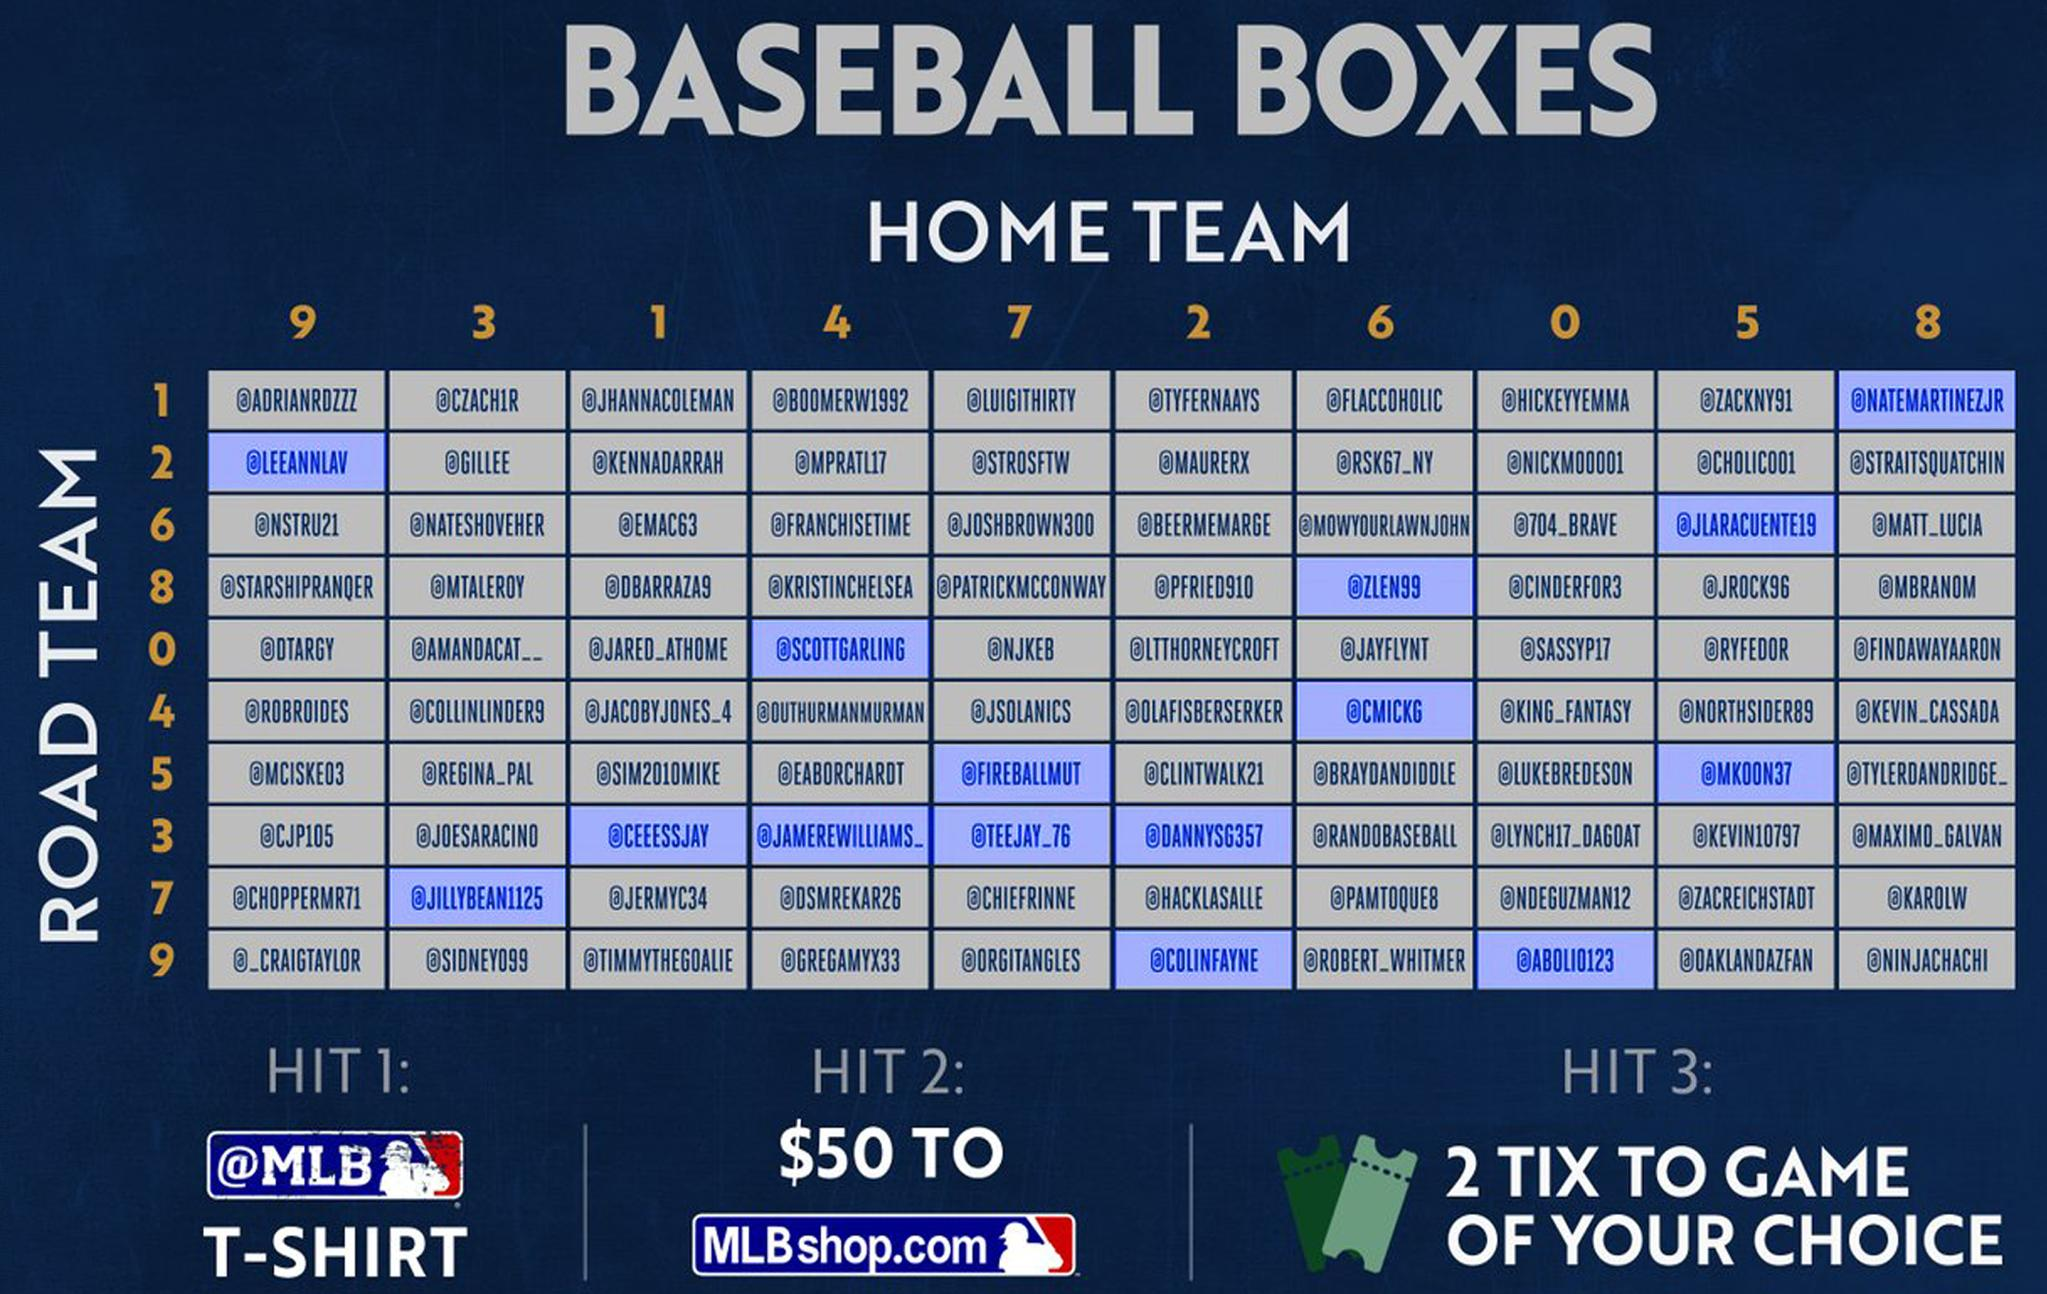 Congrats to our #BaseballBoxes winners! Next Wednesday, we do it again … https://t.co/cJgk7quvIy